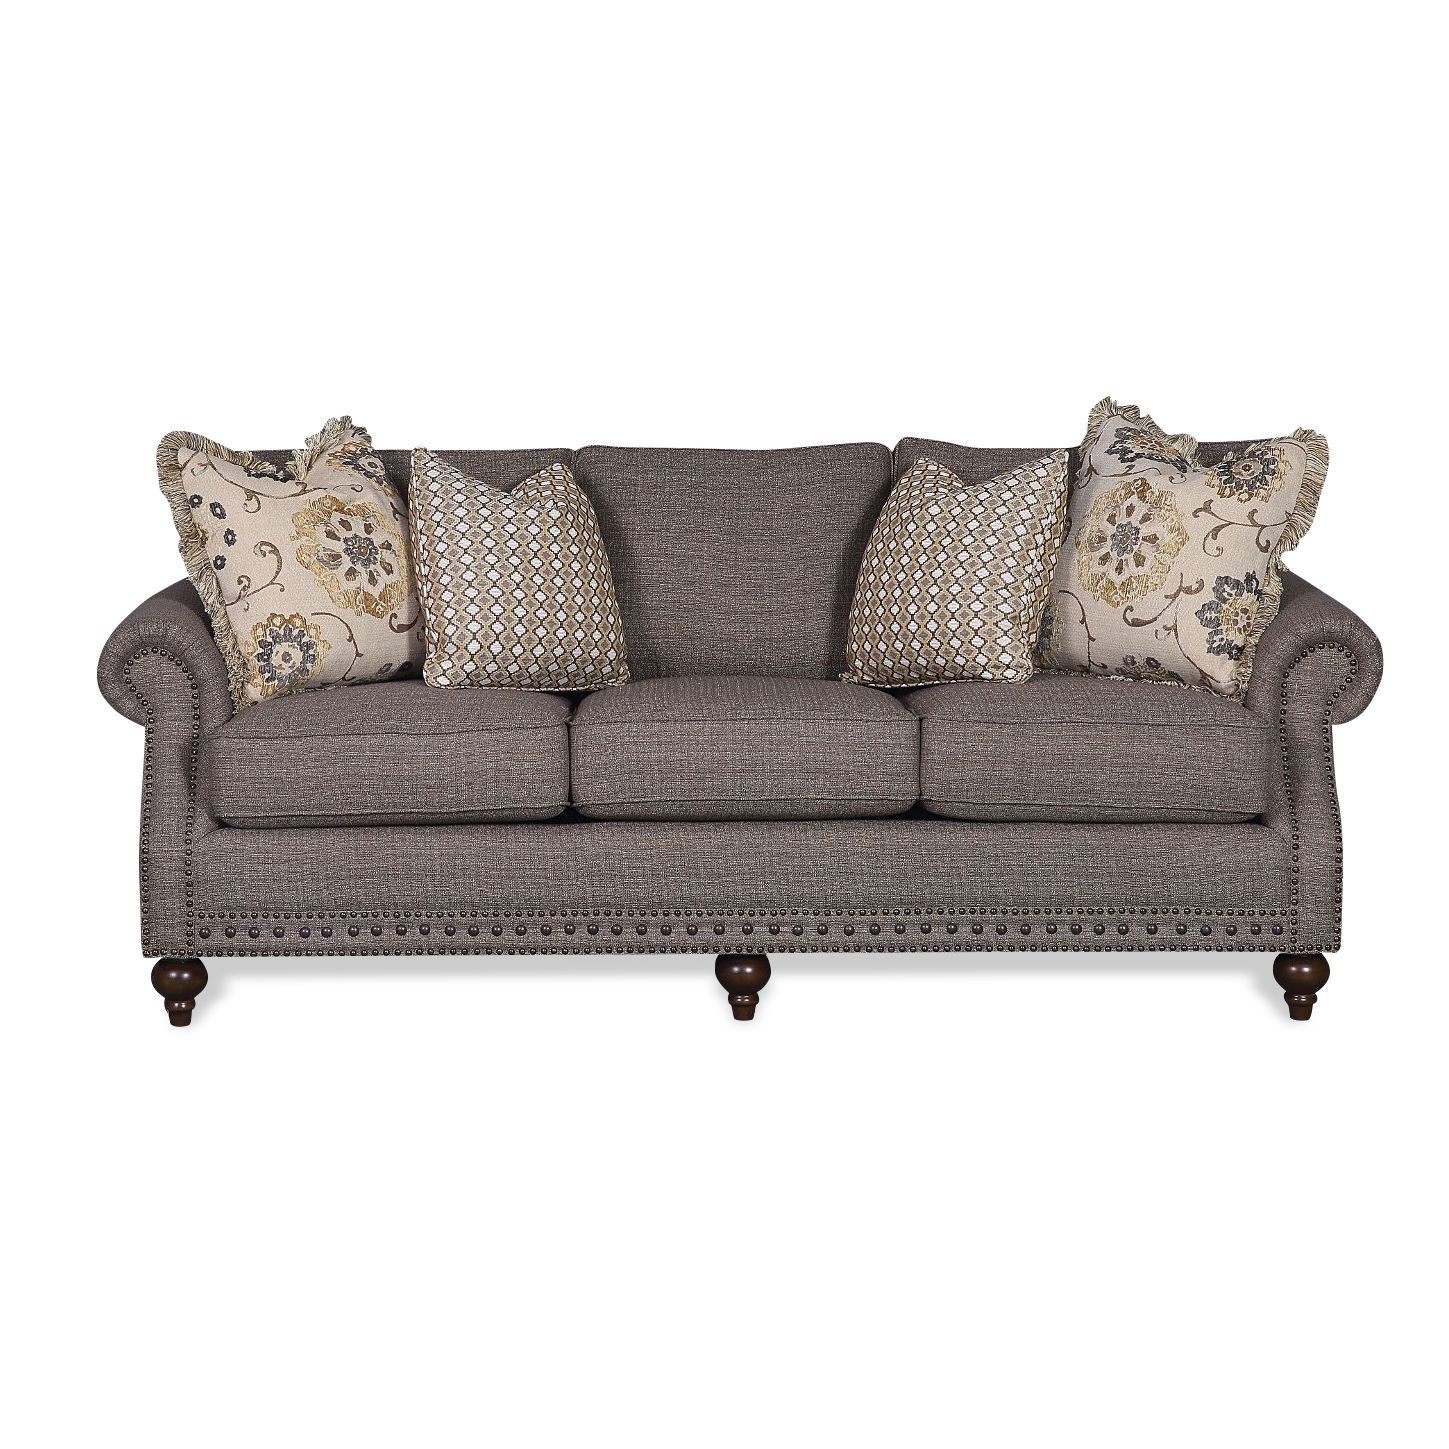 Chelsea Pewter Upholstered New Traditional Sofa Mcnair